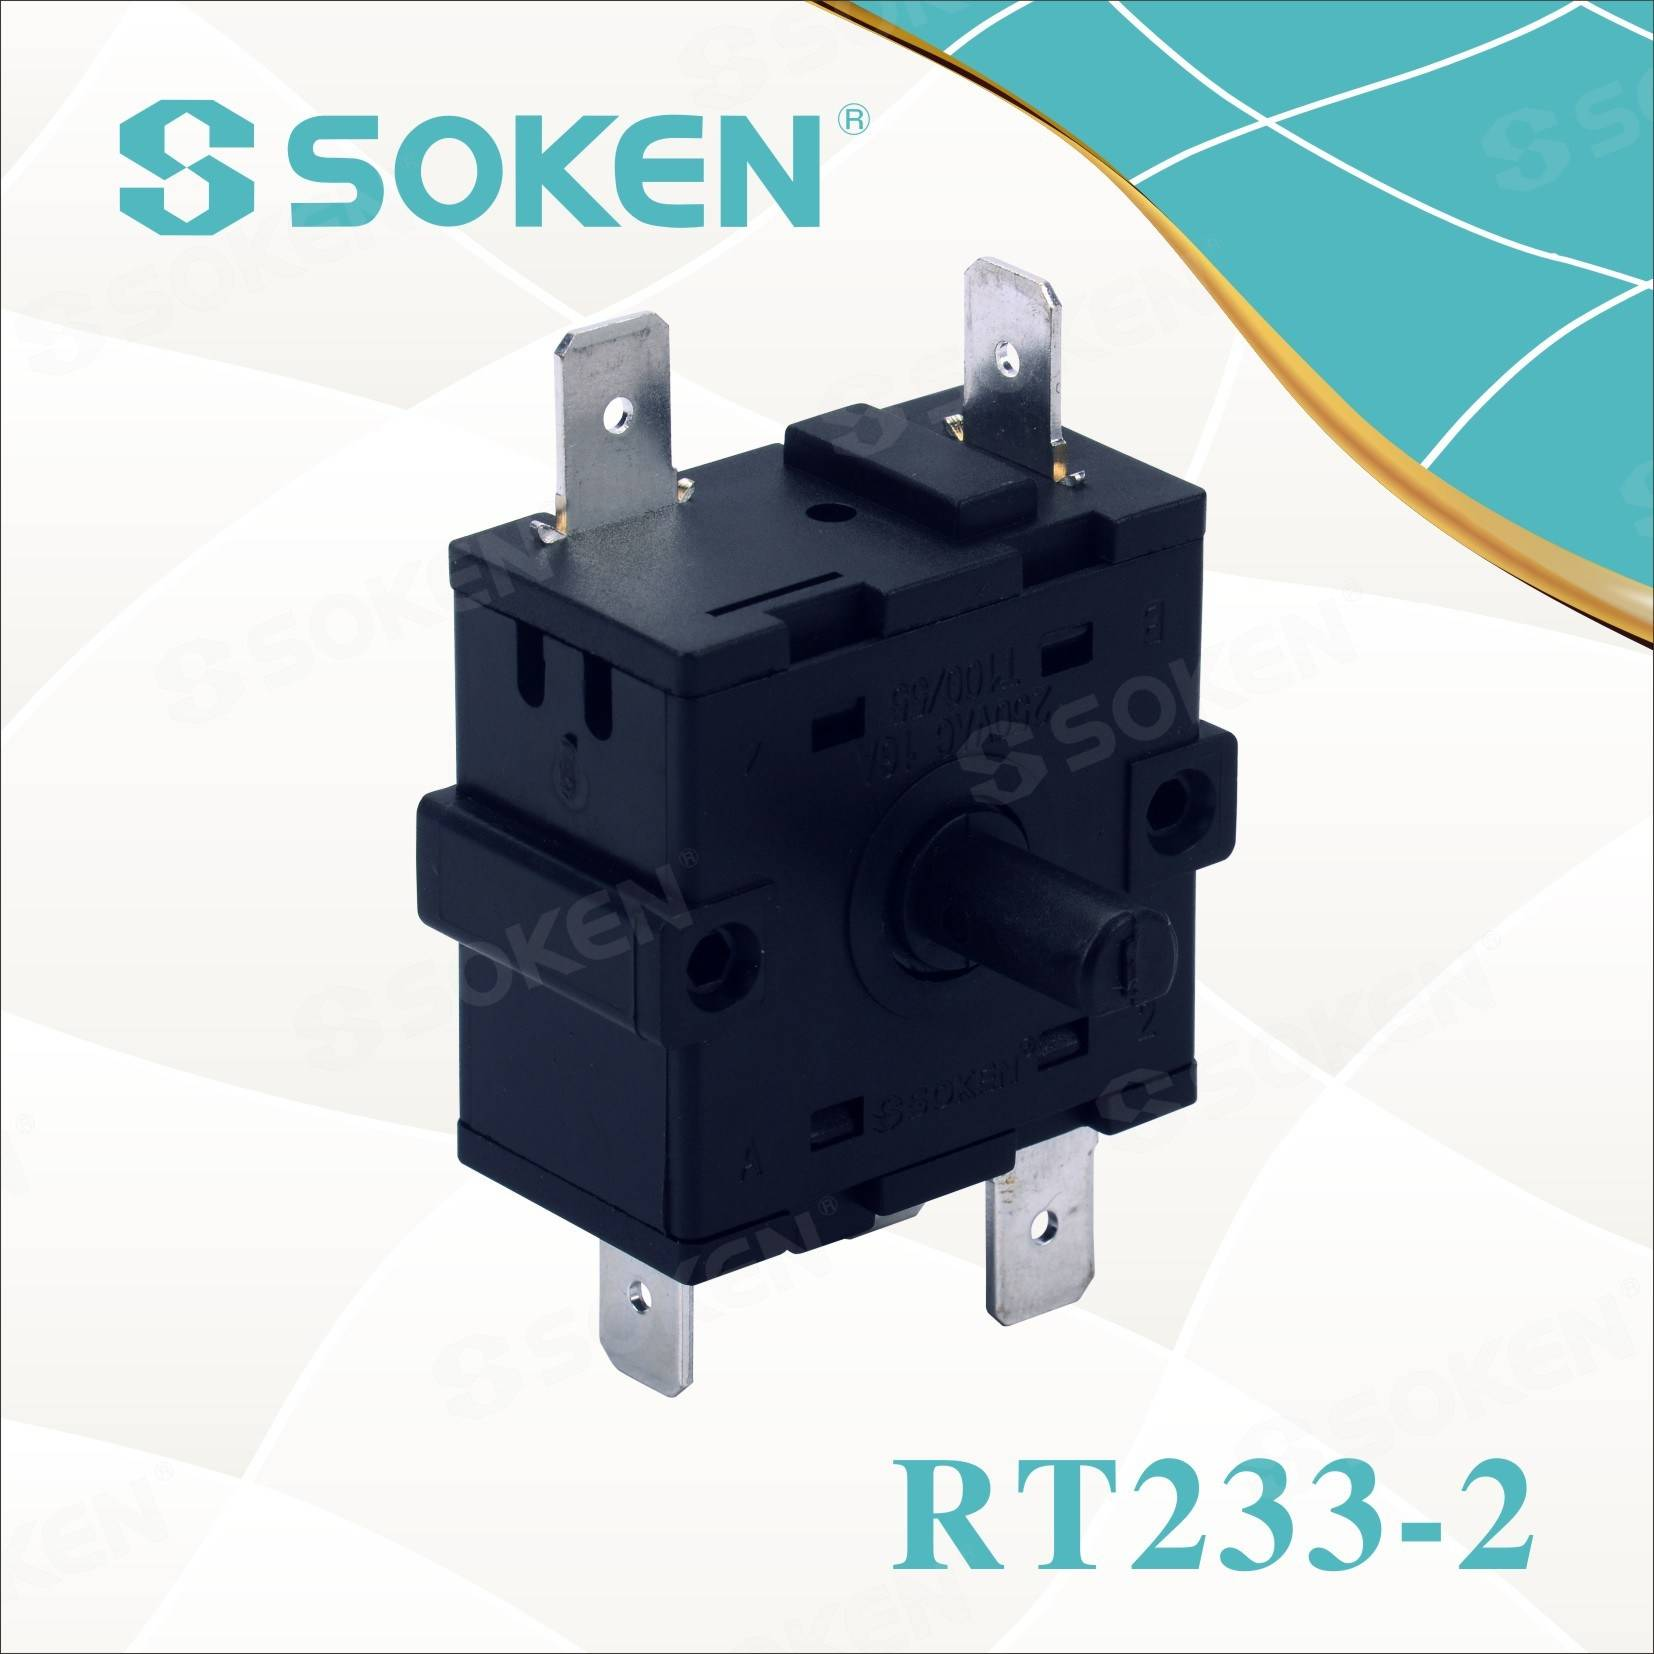 Soken Oil Heater Rotary Switch